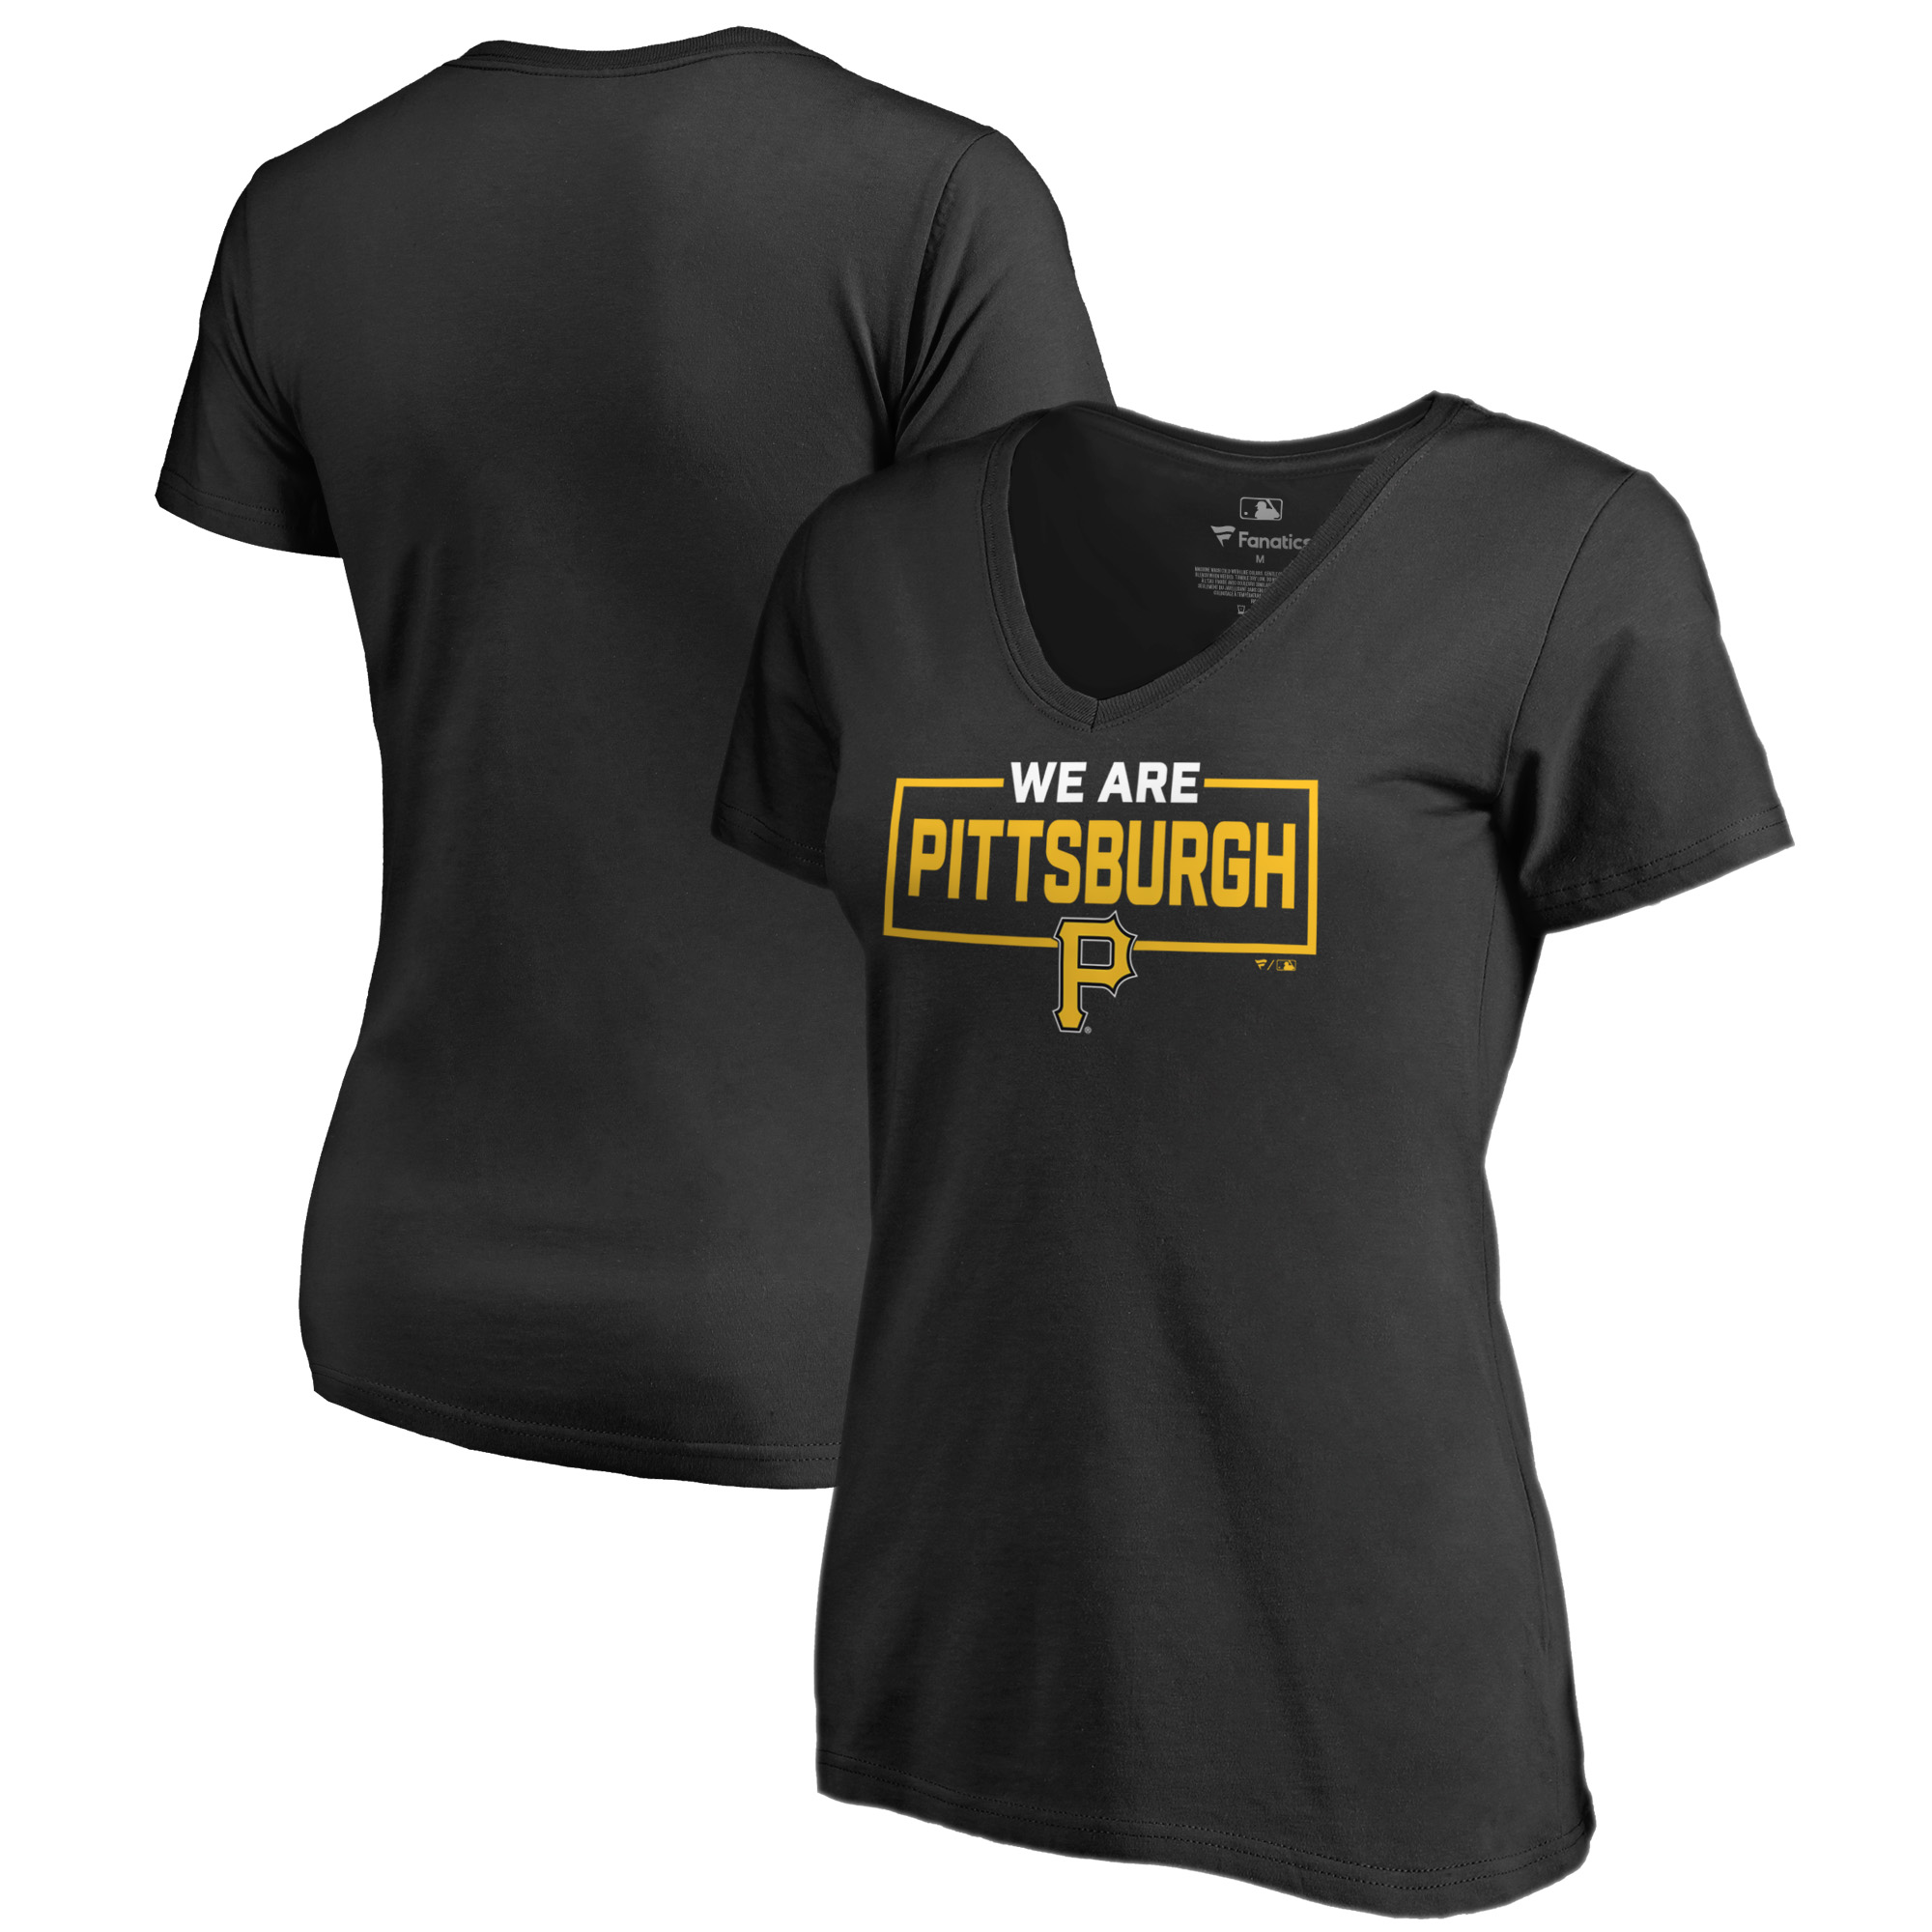 Pittsburgh Pirates Fanatics Branded Women's Plus Size We Are Icon V-Neck T-Shirt - Black